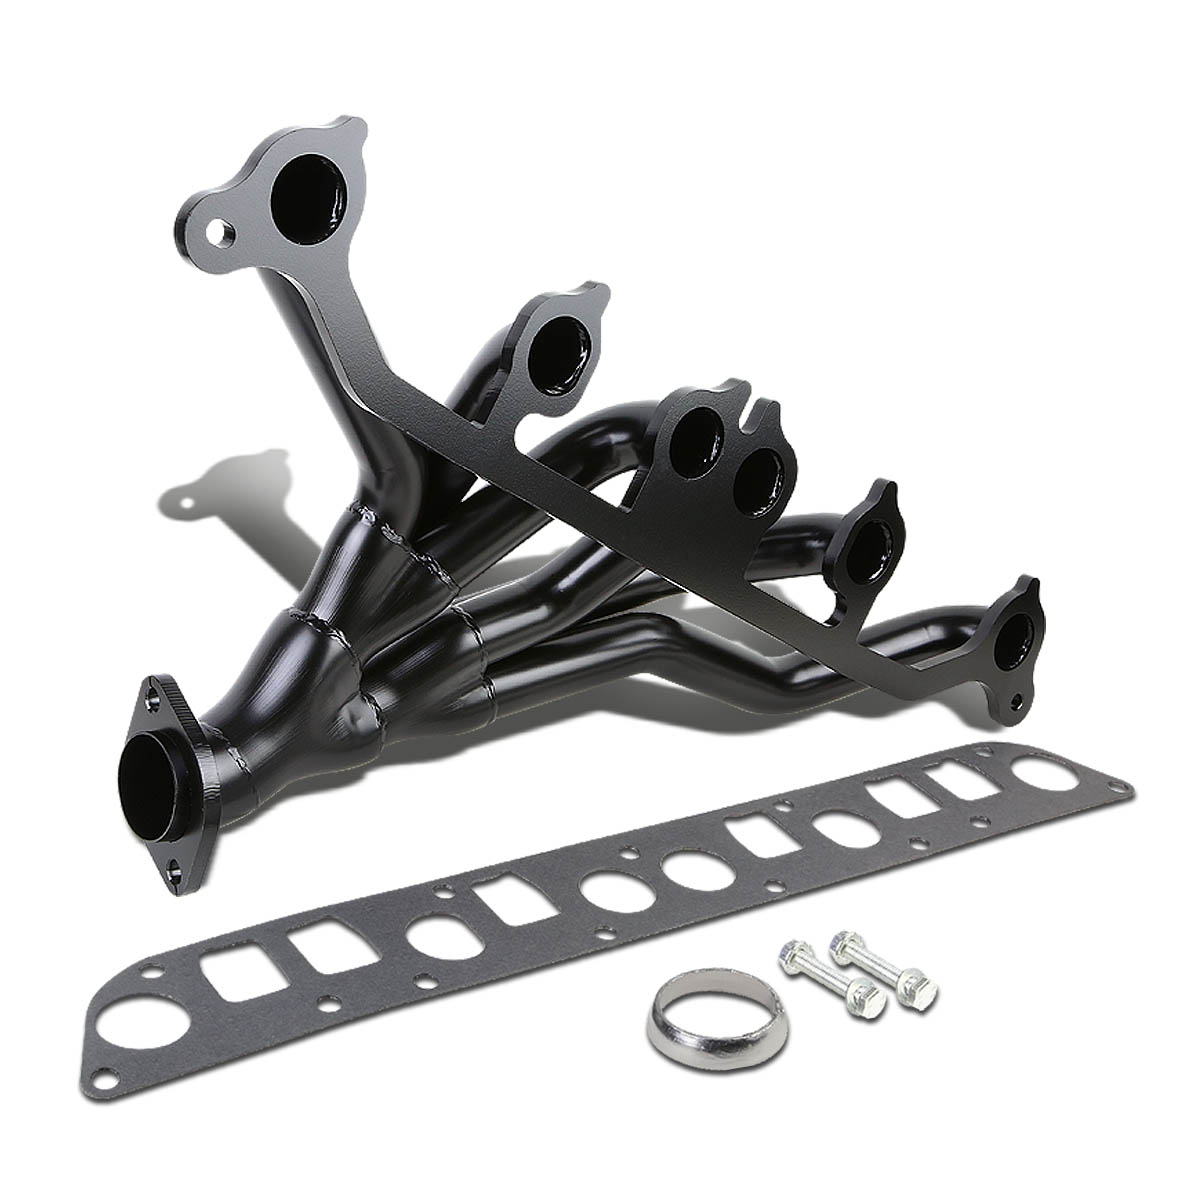 For 91-99 Jeep Wrangler Cherokee Stainless Steel Exhaust Header Kit (Black painted) 92 93 94 95 96 97 98